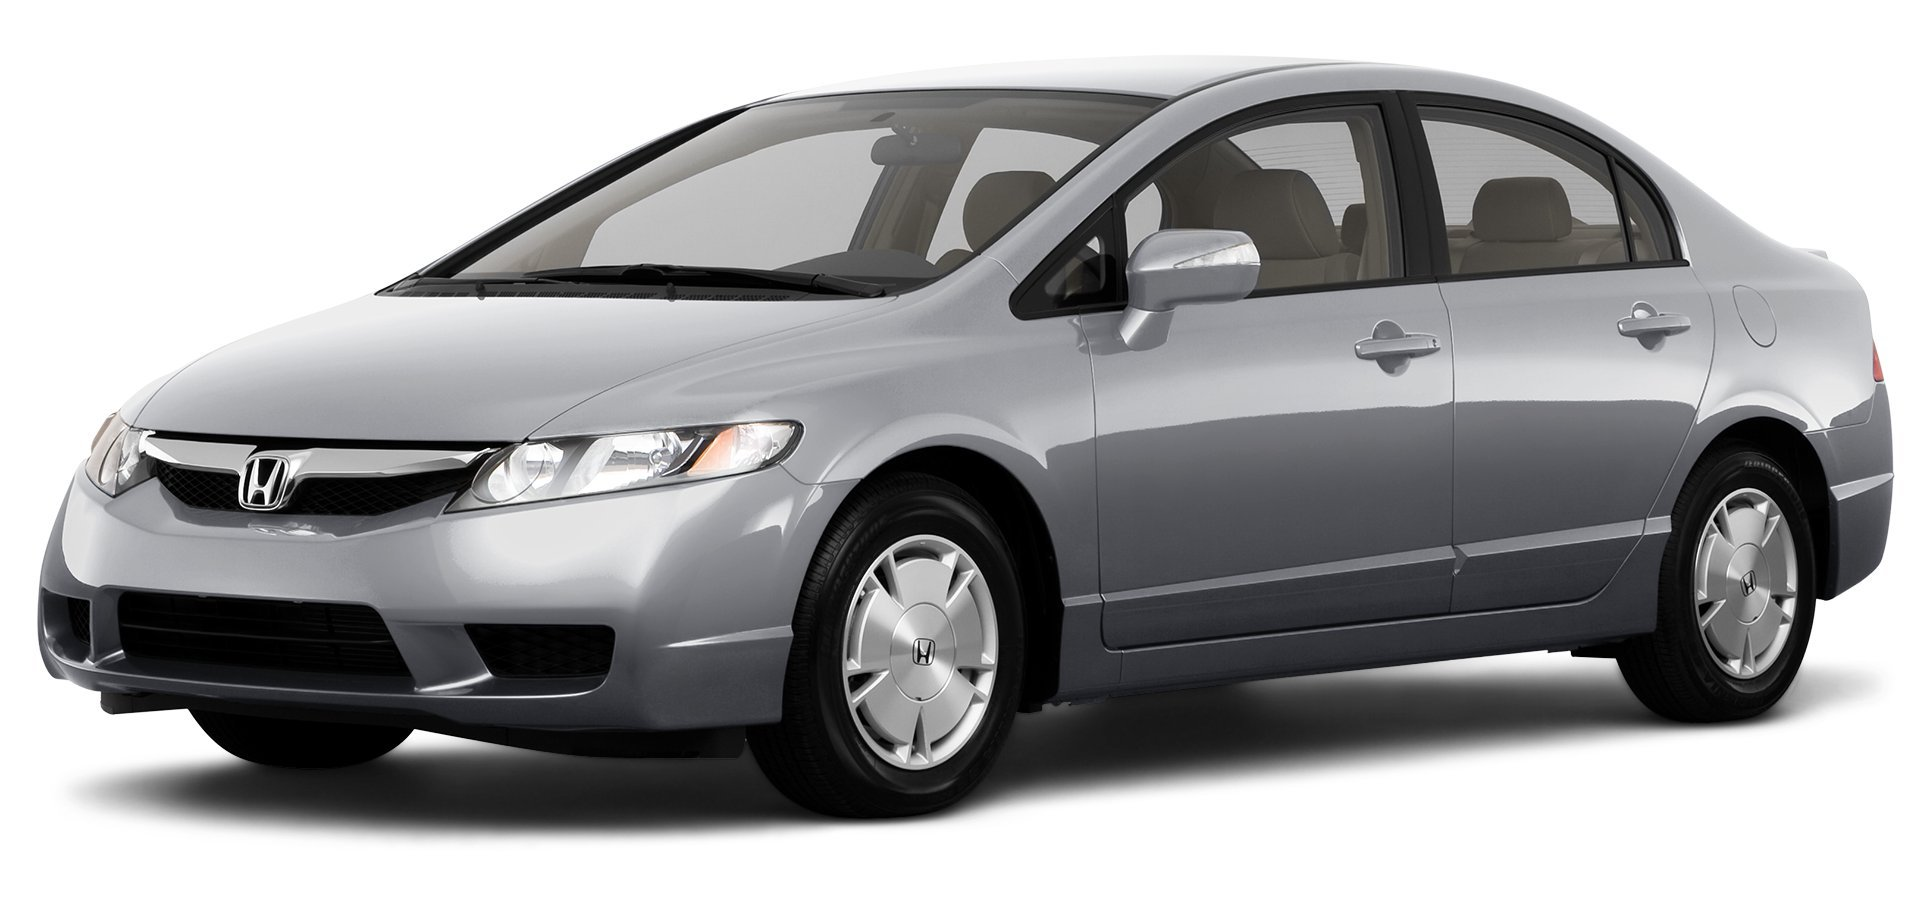 Amazon Com 2010 Honda Civic Reviews Images And Specs Vehicles